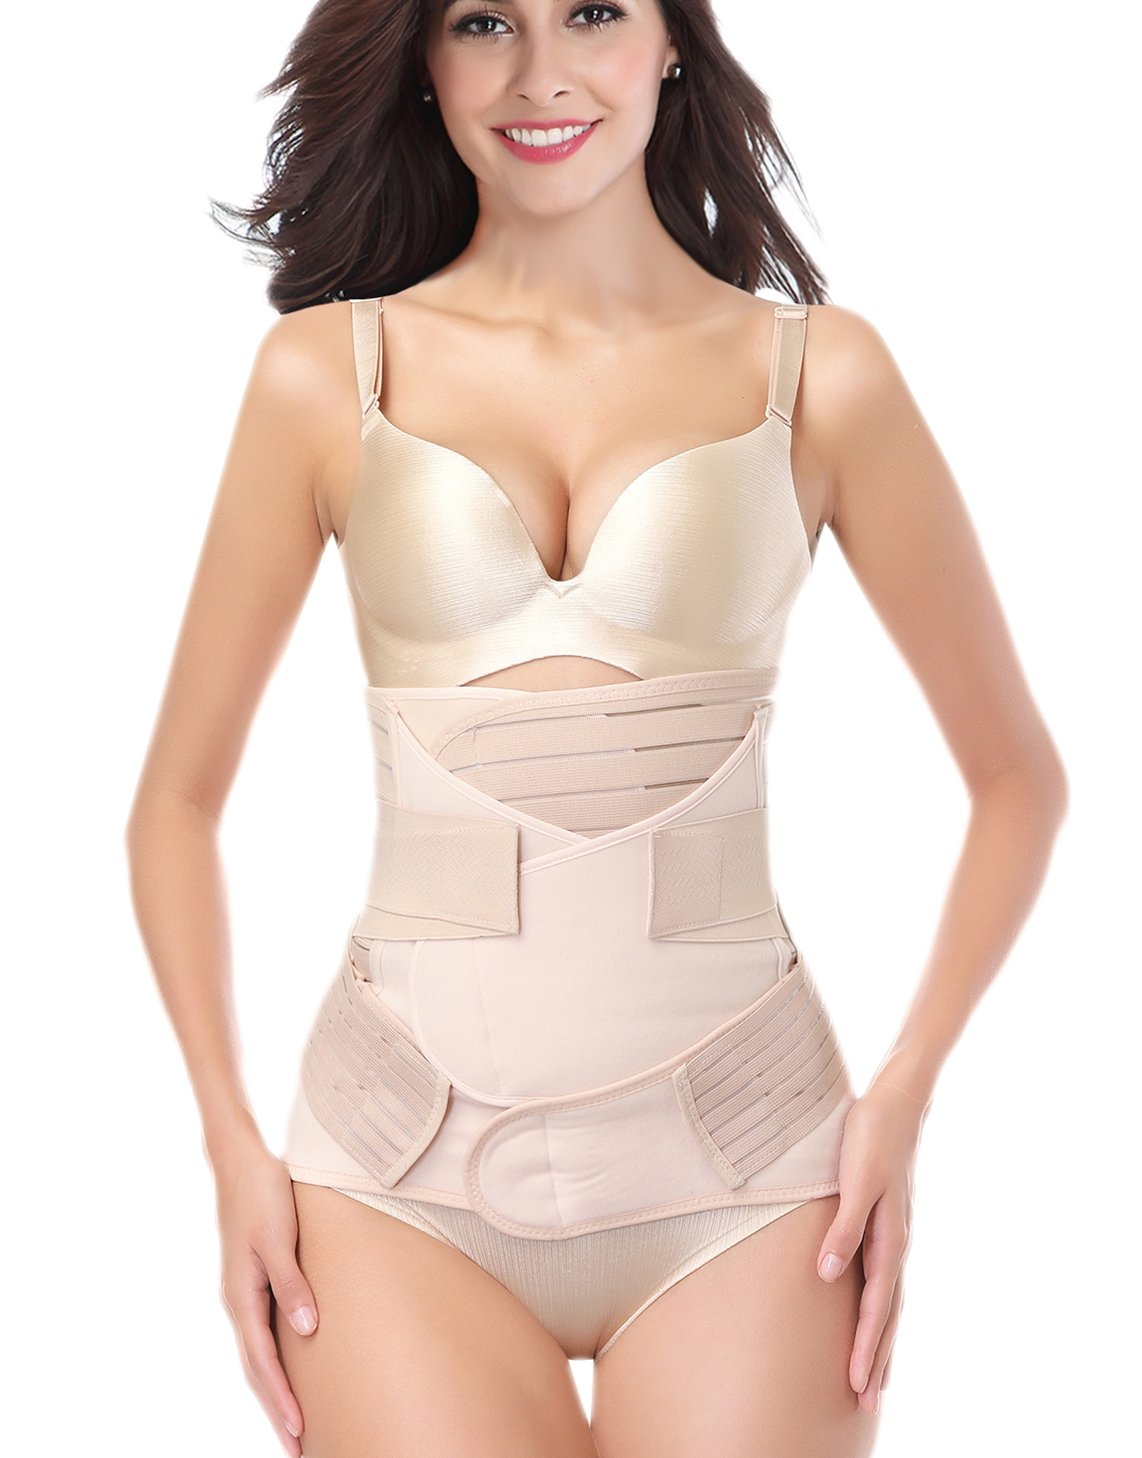 73b2ca98a1 DICOOL 3 in 1 Postpartum Support Recovery Girdle Corset Belly Waist Pelvis  Belt Shapewear Belly Wrap